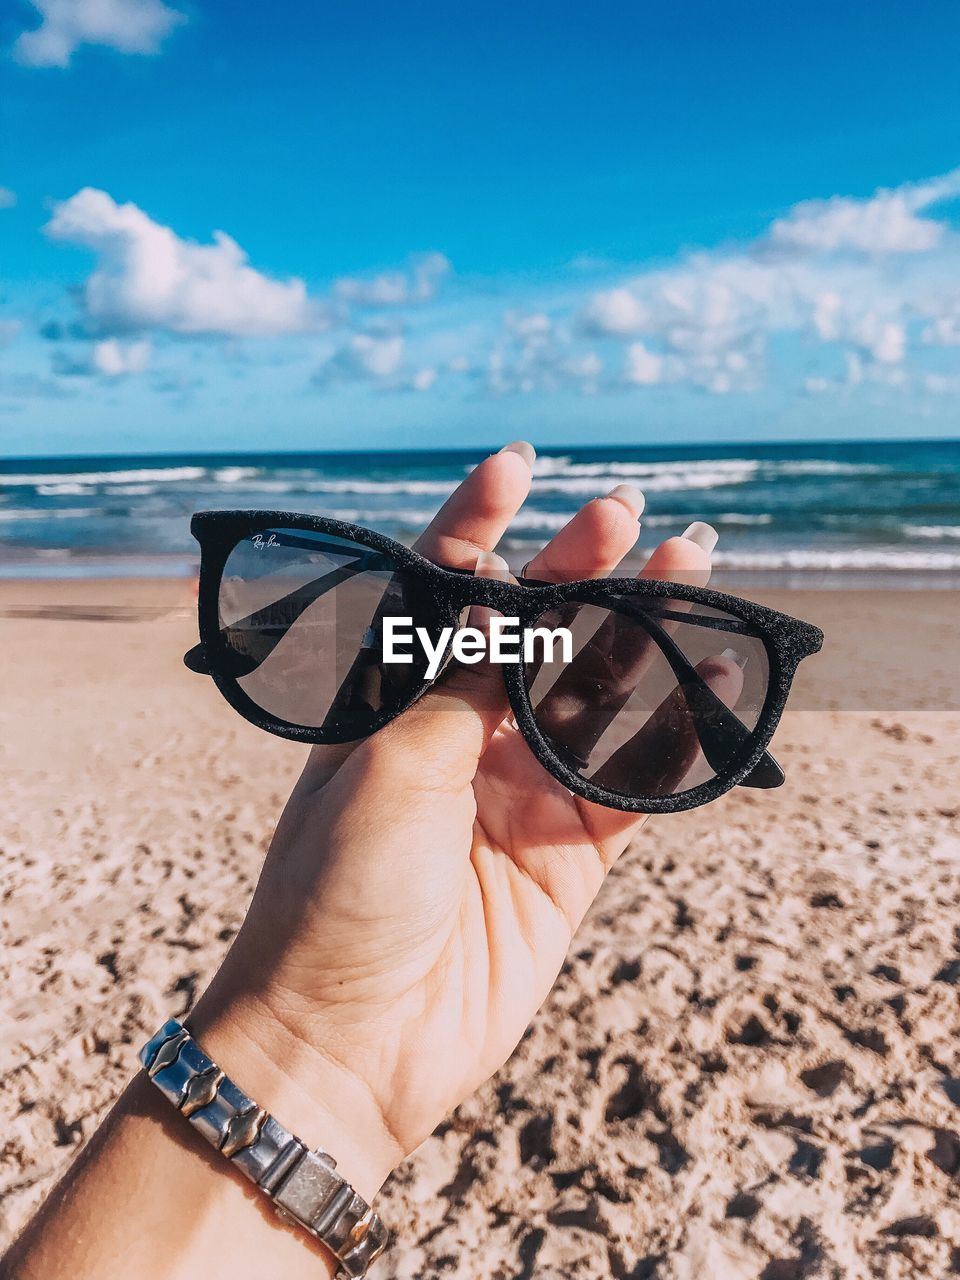 sea, beach, land, sky, water, glasses, one person, hand, real people, horizon over water, sunglasses, human hand, horizon, human body part, leisure activity, personal perspective, day, nature, lifestyles, fashion, outdoors, body part, personal accessory